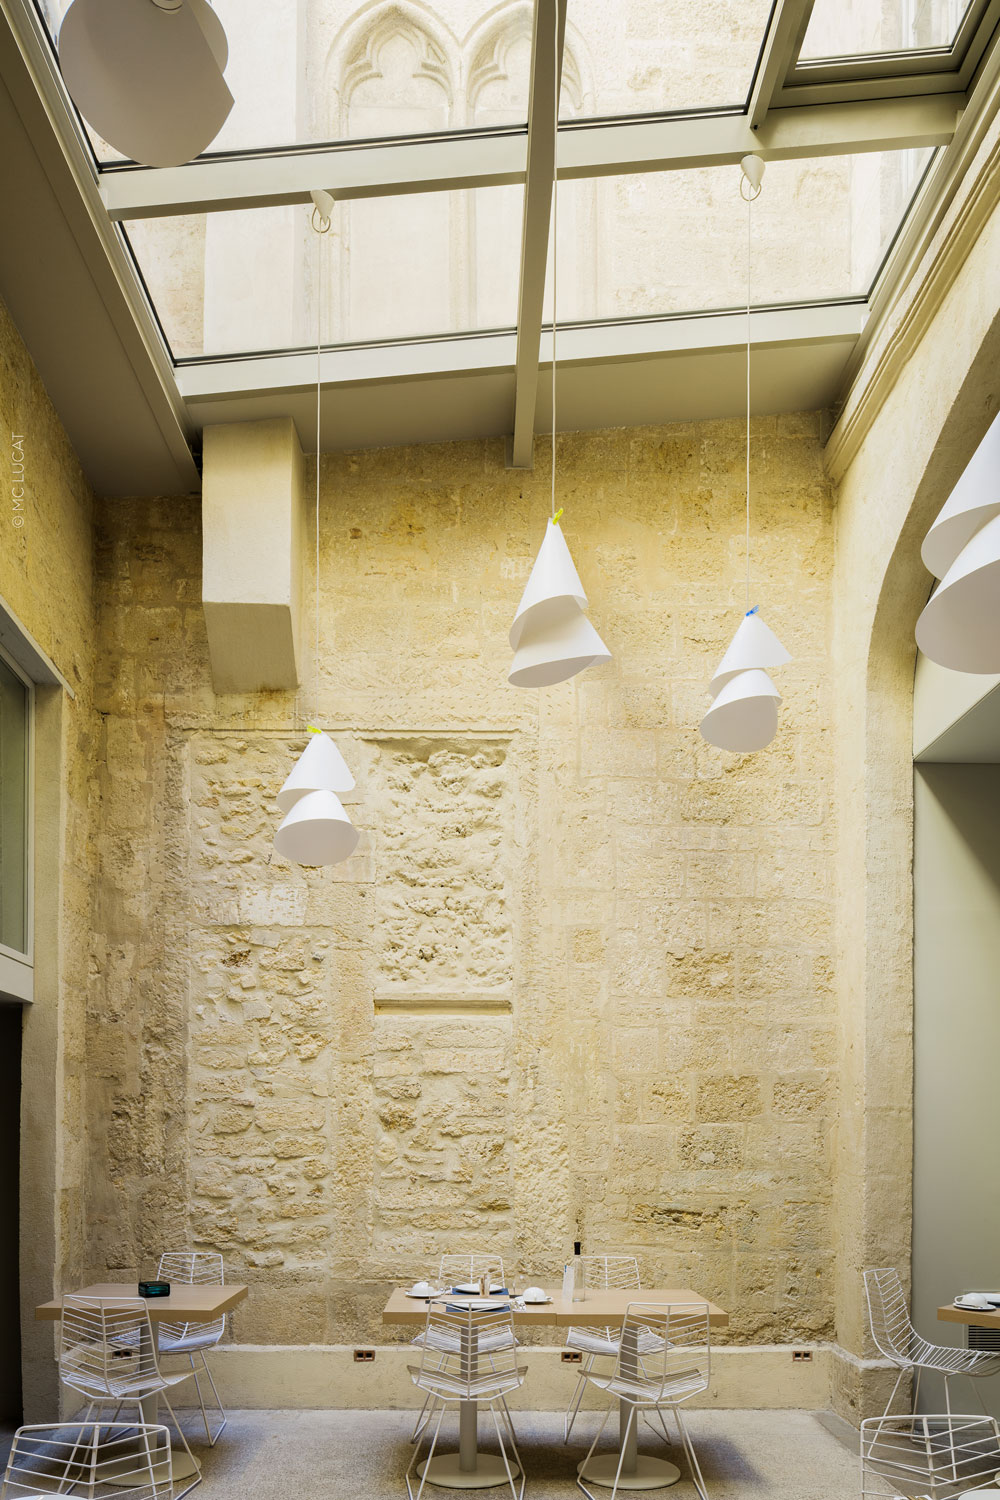 The exquisite golden-hued Montpellier limestone is once again the backdrop at breakfast